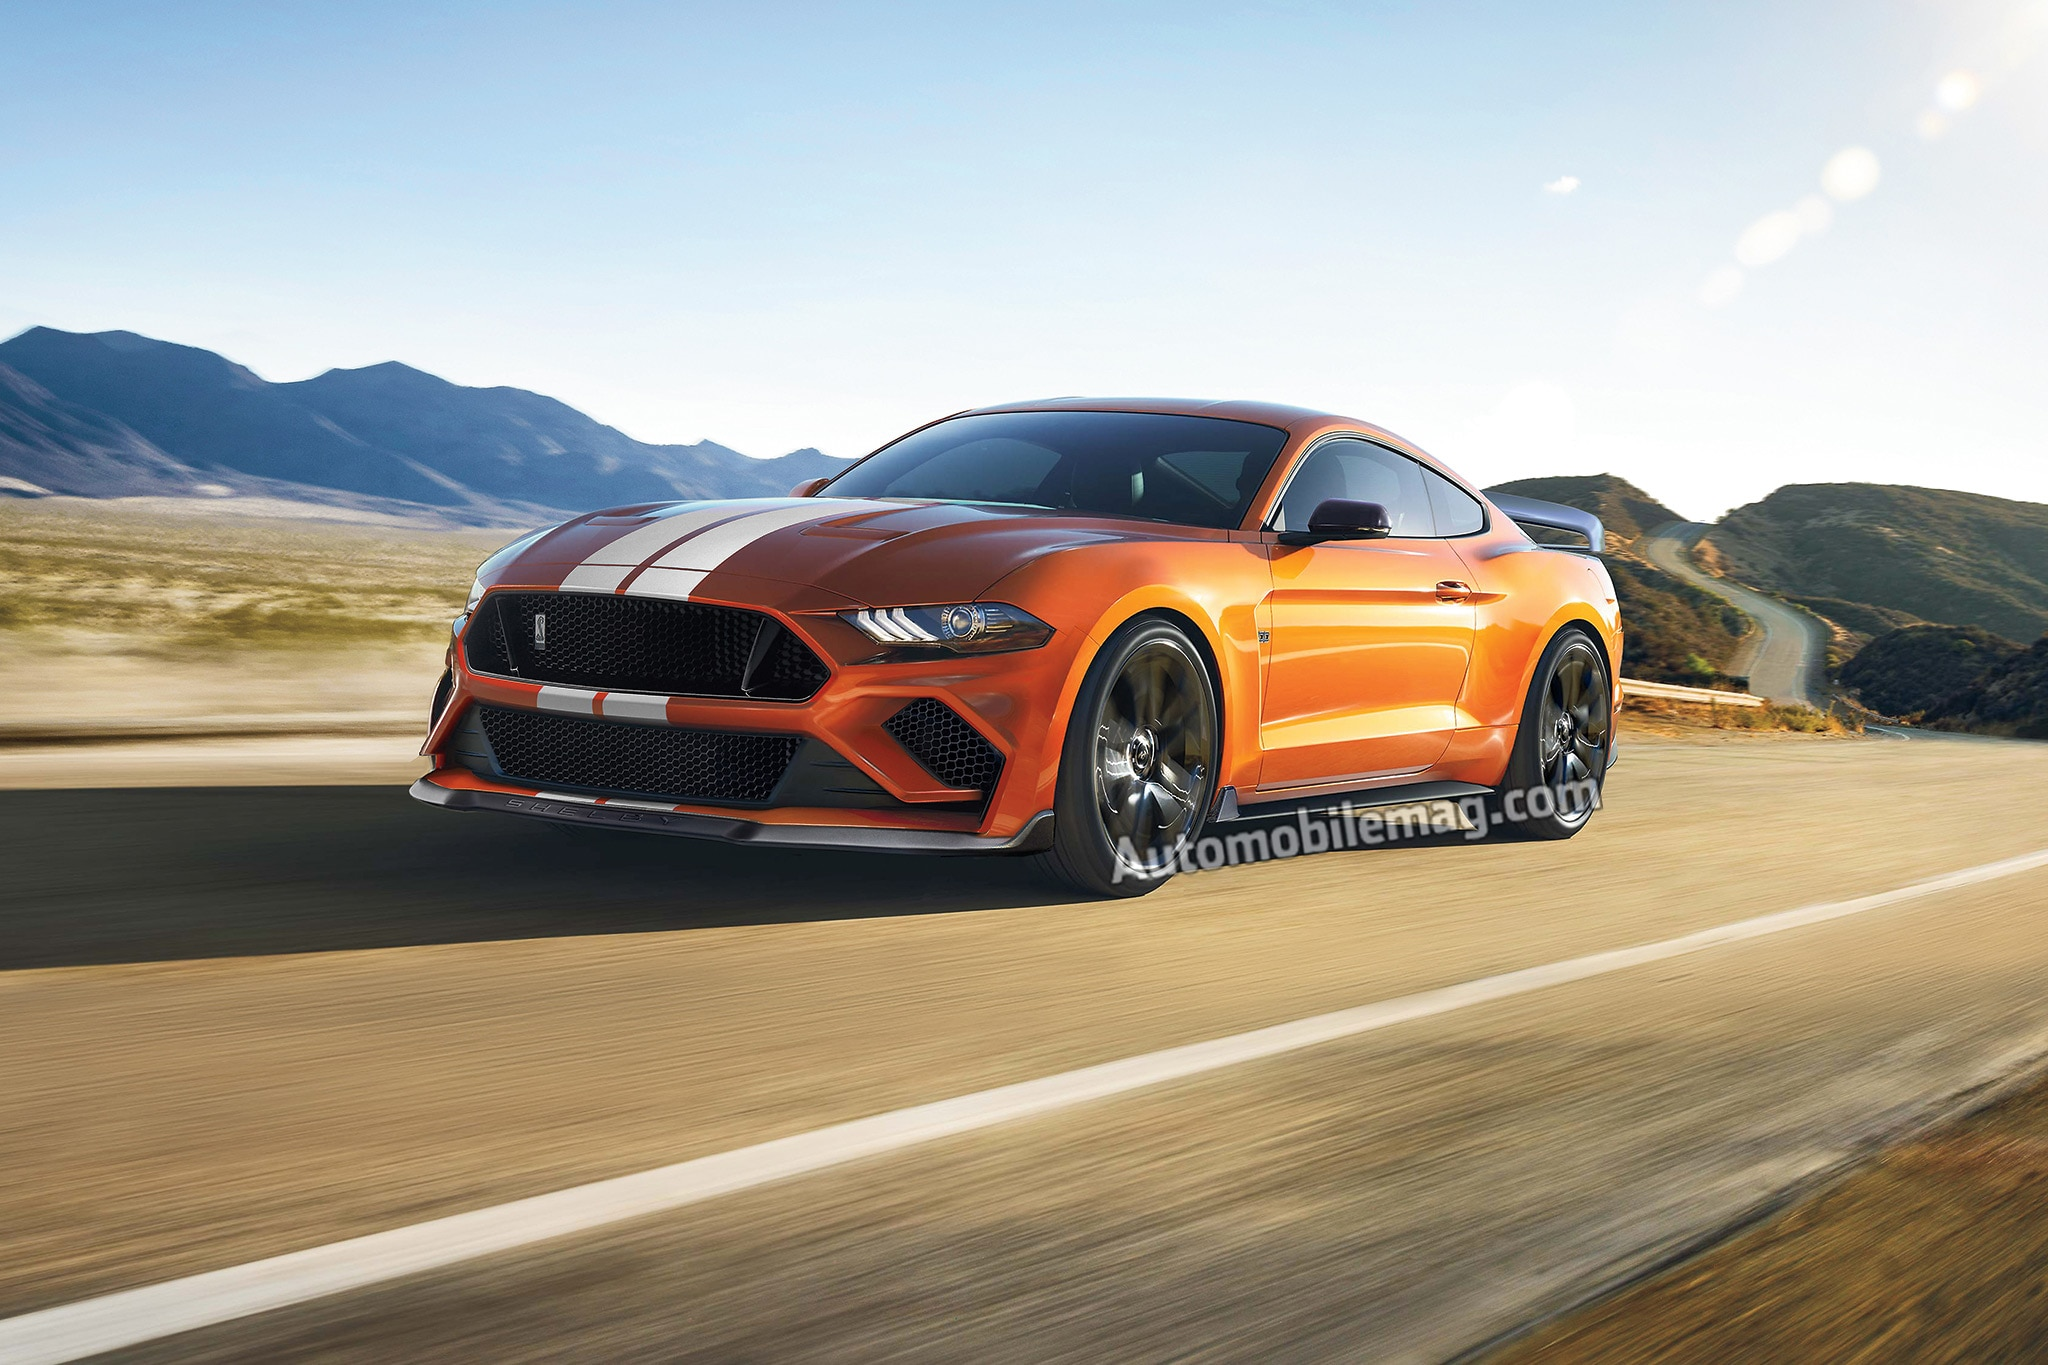 2019 ford mustang shelby gt500 confirmed with 700 horsepower. Black Bedroom Furniture Sets. Home Design Ideas